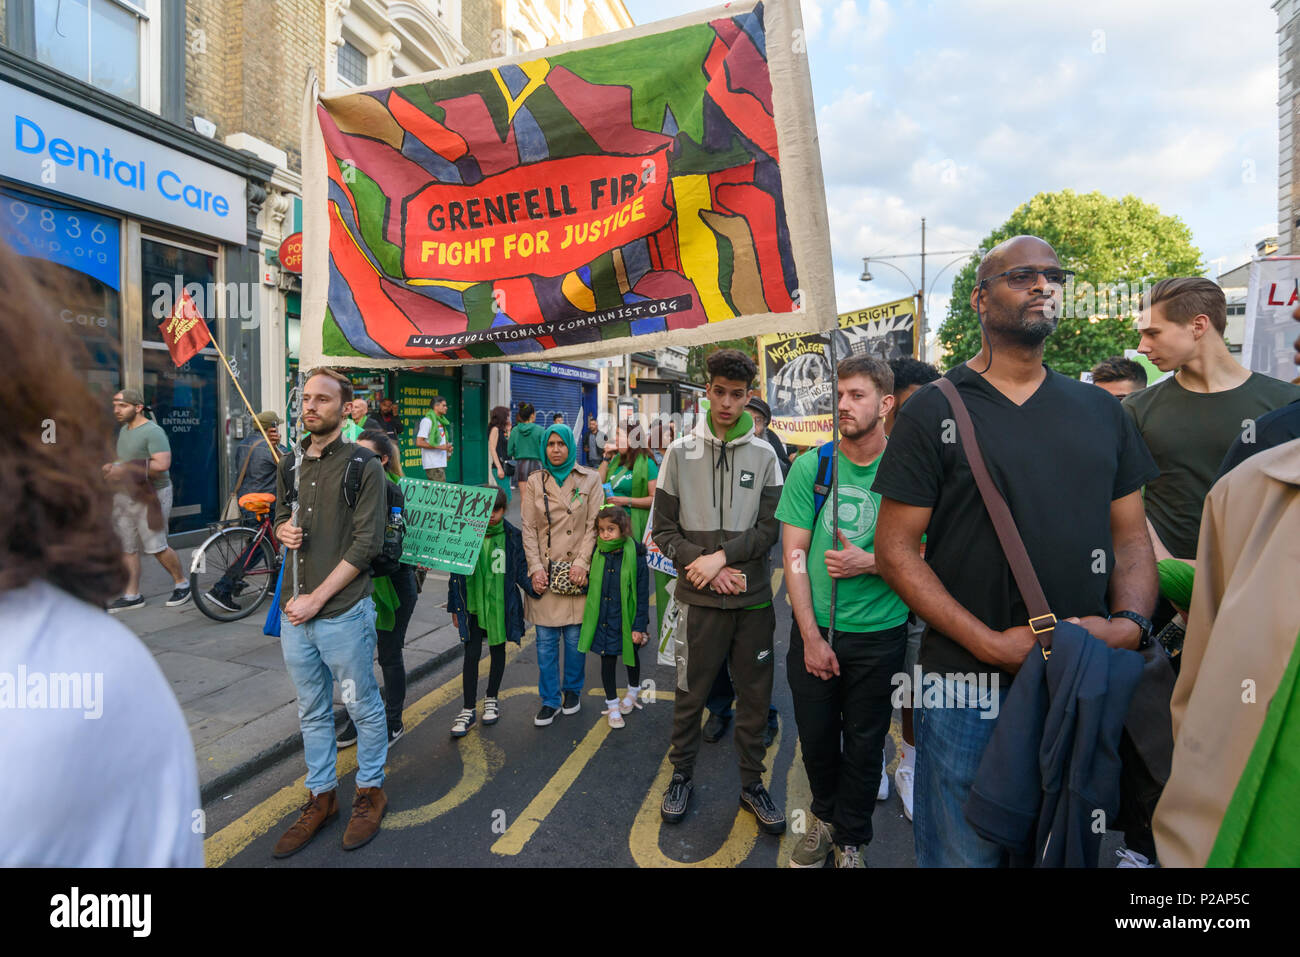 London, UK. 14th June 2018. 'Grenfell Fire - Figth for Justice' reads a banner as thousands walk in silence along Ladbroke Grove remembering the victims of the disaster on the first anniversary of the disastrous fire which killed 72 and left survivors traumatised. Many of those made homeless by the fire are still in temporary accomodation a year later despite promises mde by Theresa May and Kensington & Chelsea council, who many fell have failed the local community both before and after the fire.  call for jus Credit: Peter Marshall/Alamy Live News - Stock Image